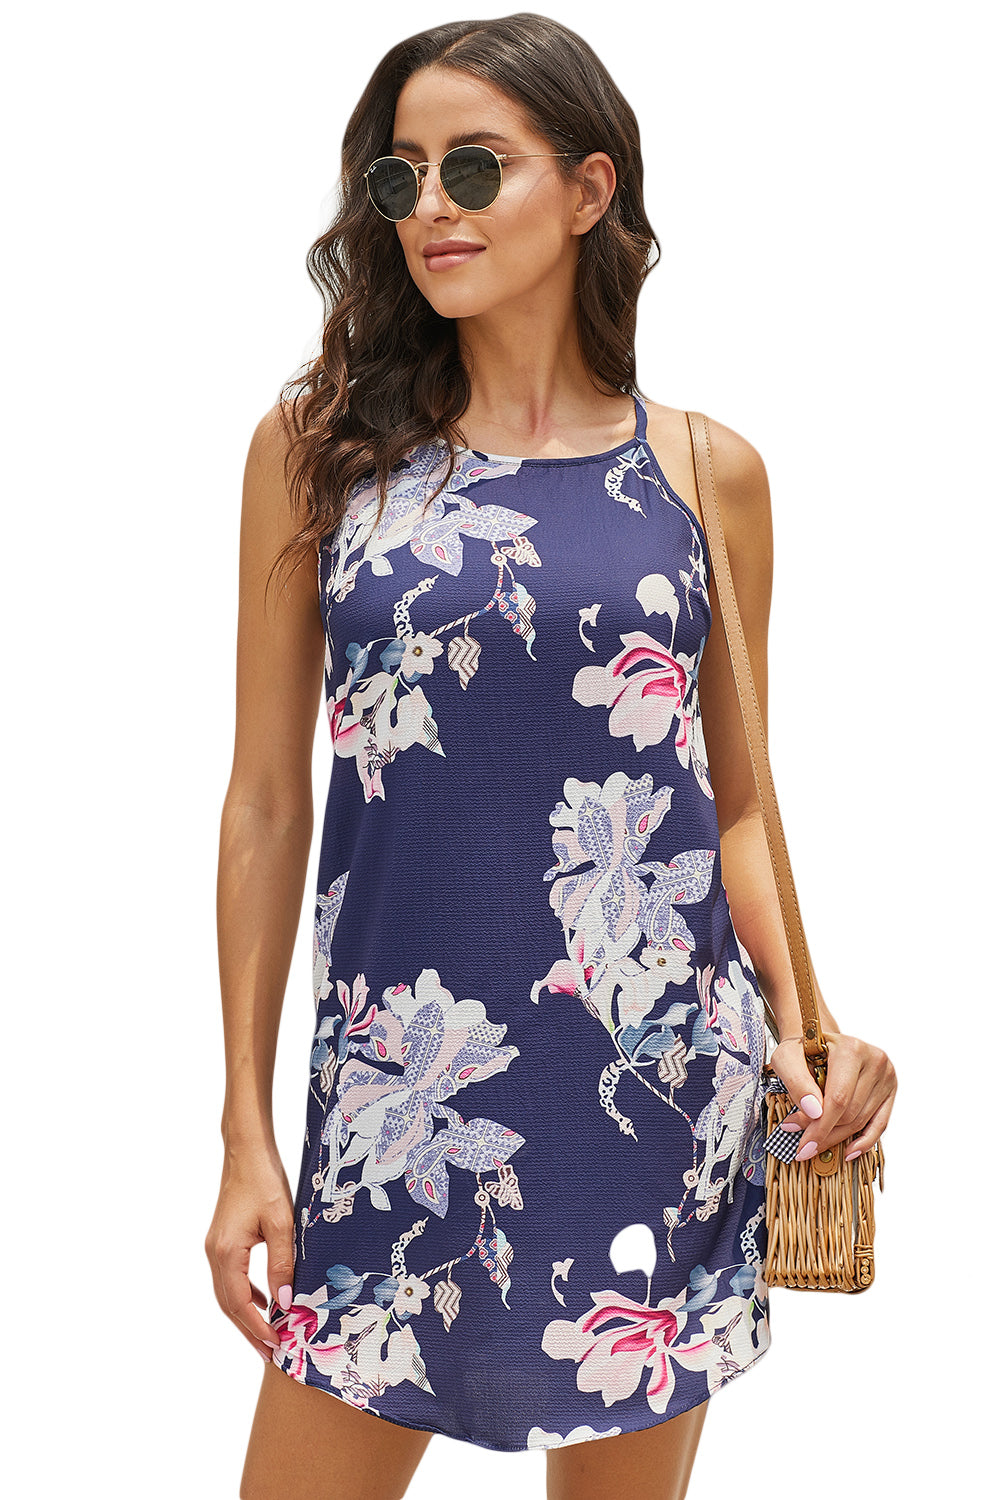 Boho Blue Sleeveless Her Fashion Summer Floral Print Mini Dress